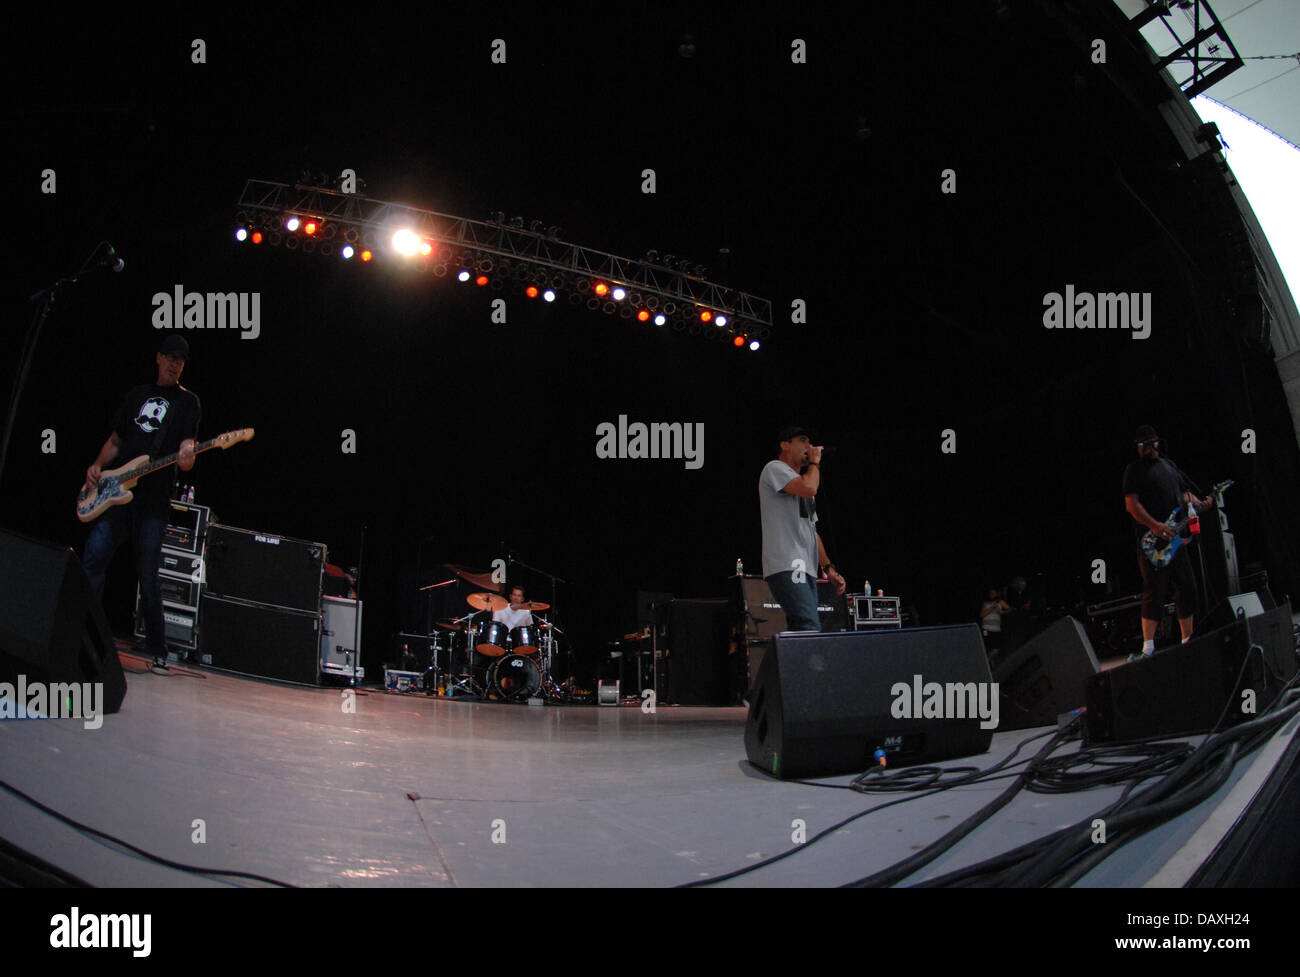 Portsmouth, Virginia, USA. 18th July, 2013. Pennywise live at The Ntelos Pavilion in Portsmouth. Credit:  Jeff Moore/ZUMAPRESS.com/Alamy Stock Photo